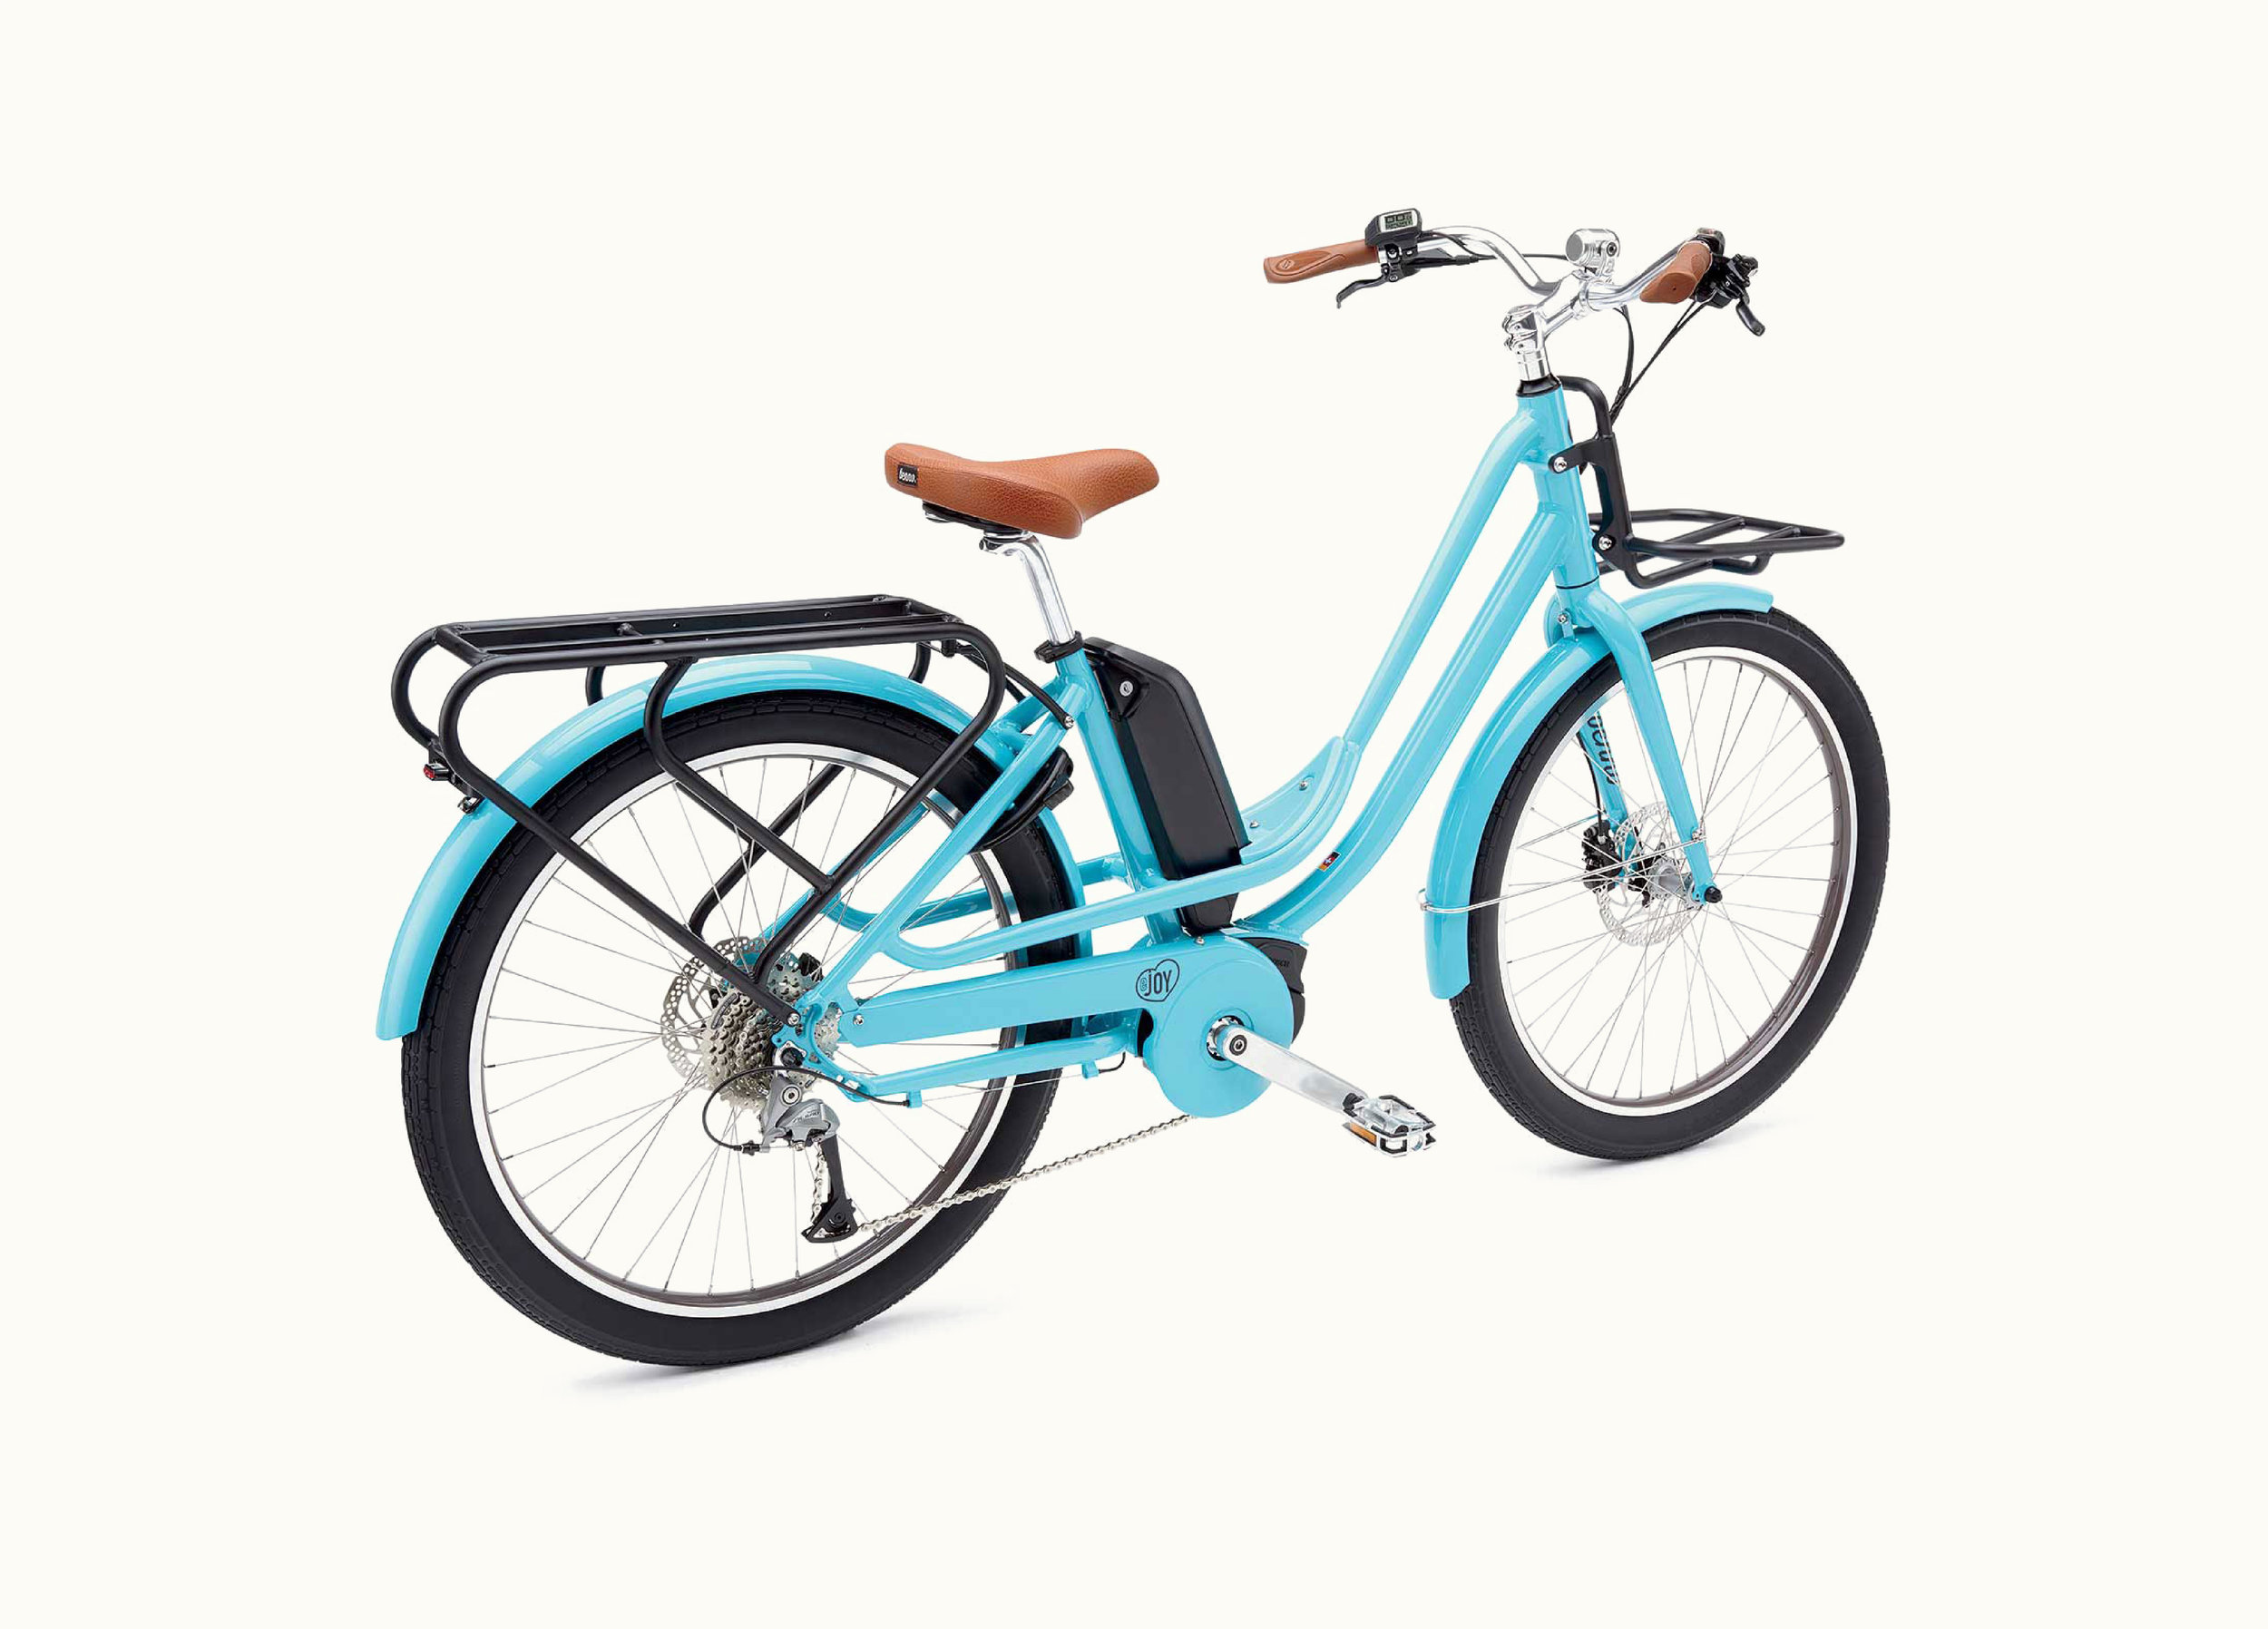 BENNO STEP-THROUGH EJOY - Electric, Charming & Capable